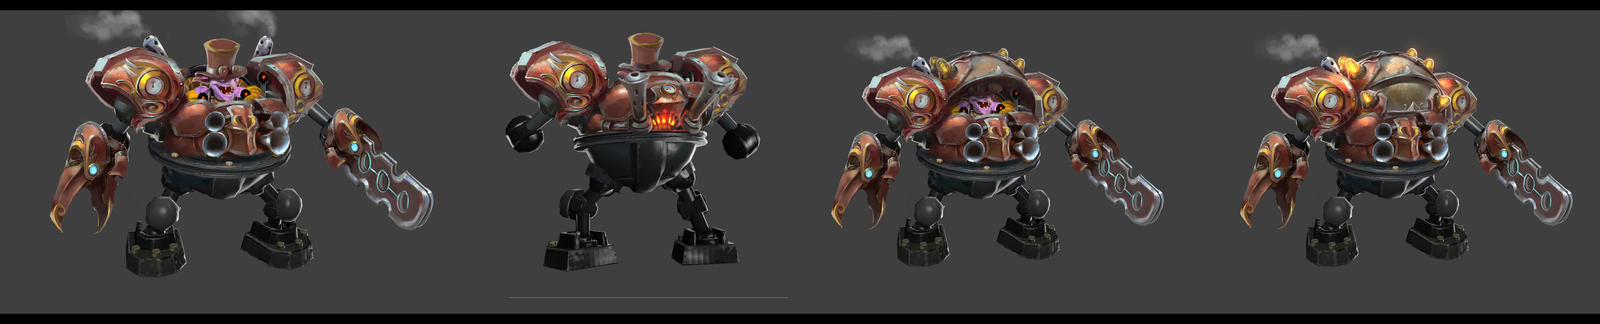 Dota 2-Timbersaw's old set concept by TrungTH